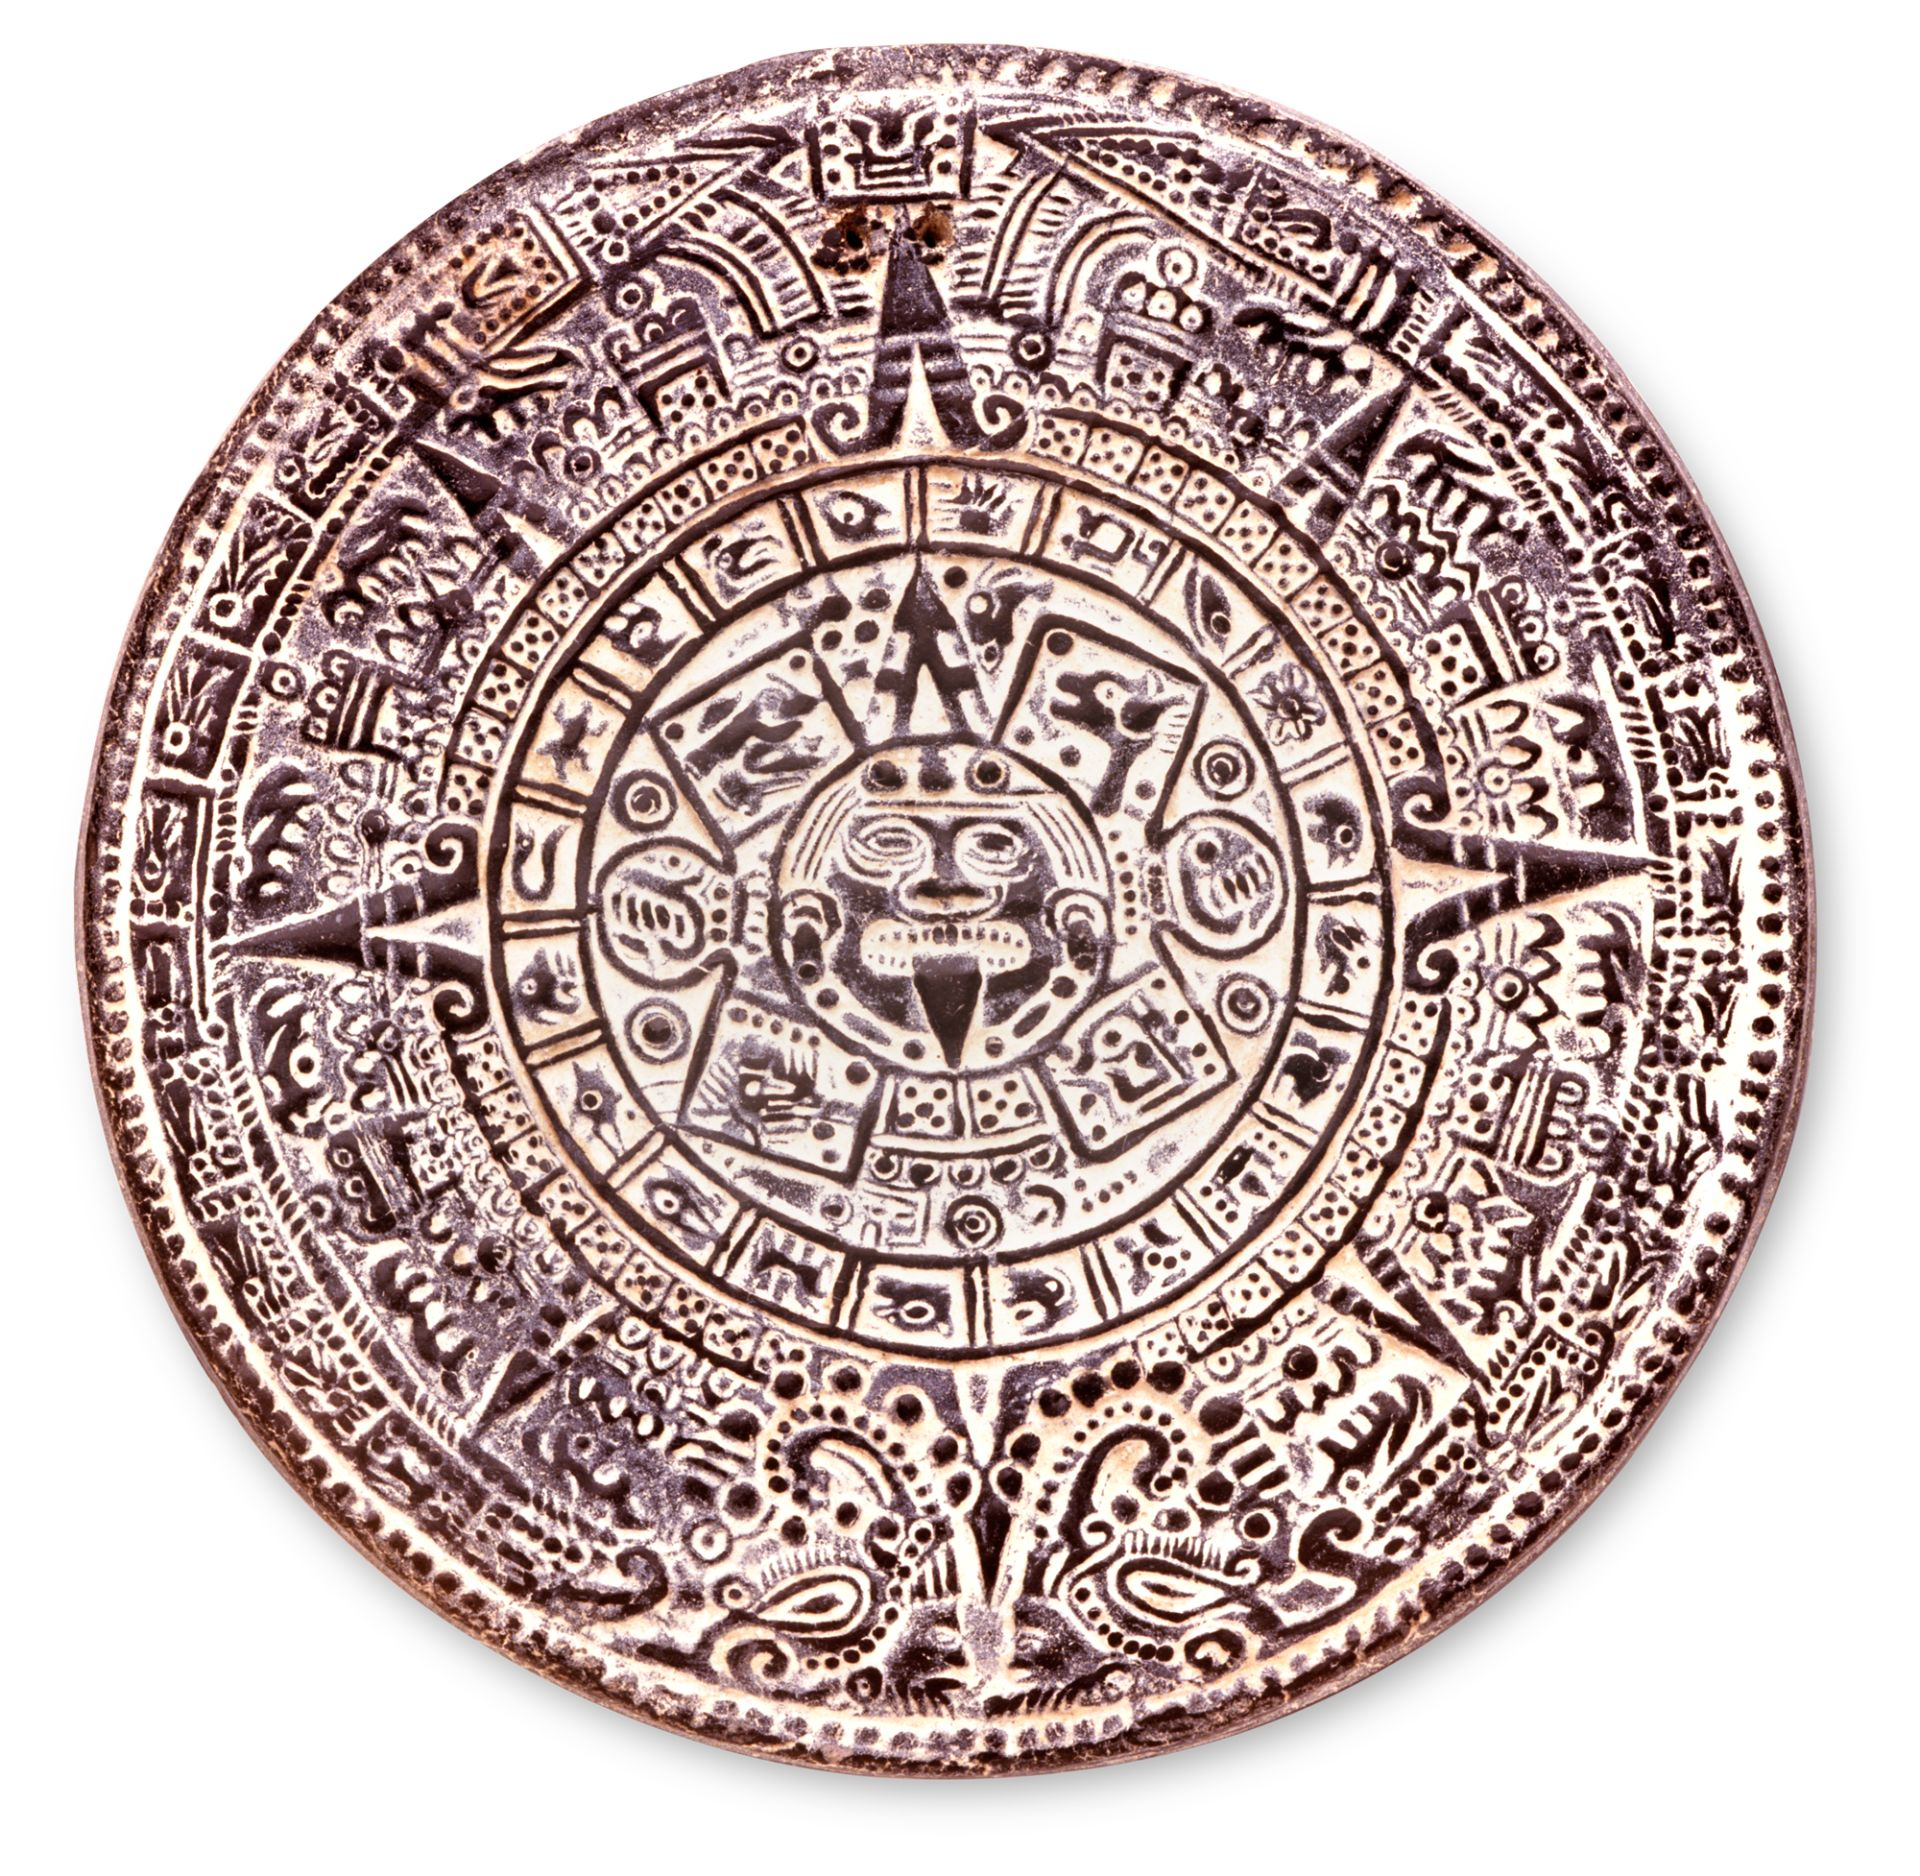 Aztec Calendar Stone   Aztec Calendar Facts   Dk Find Out Intended For How To Read Aztec Calendar